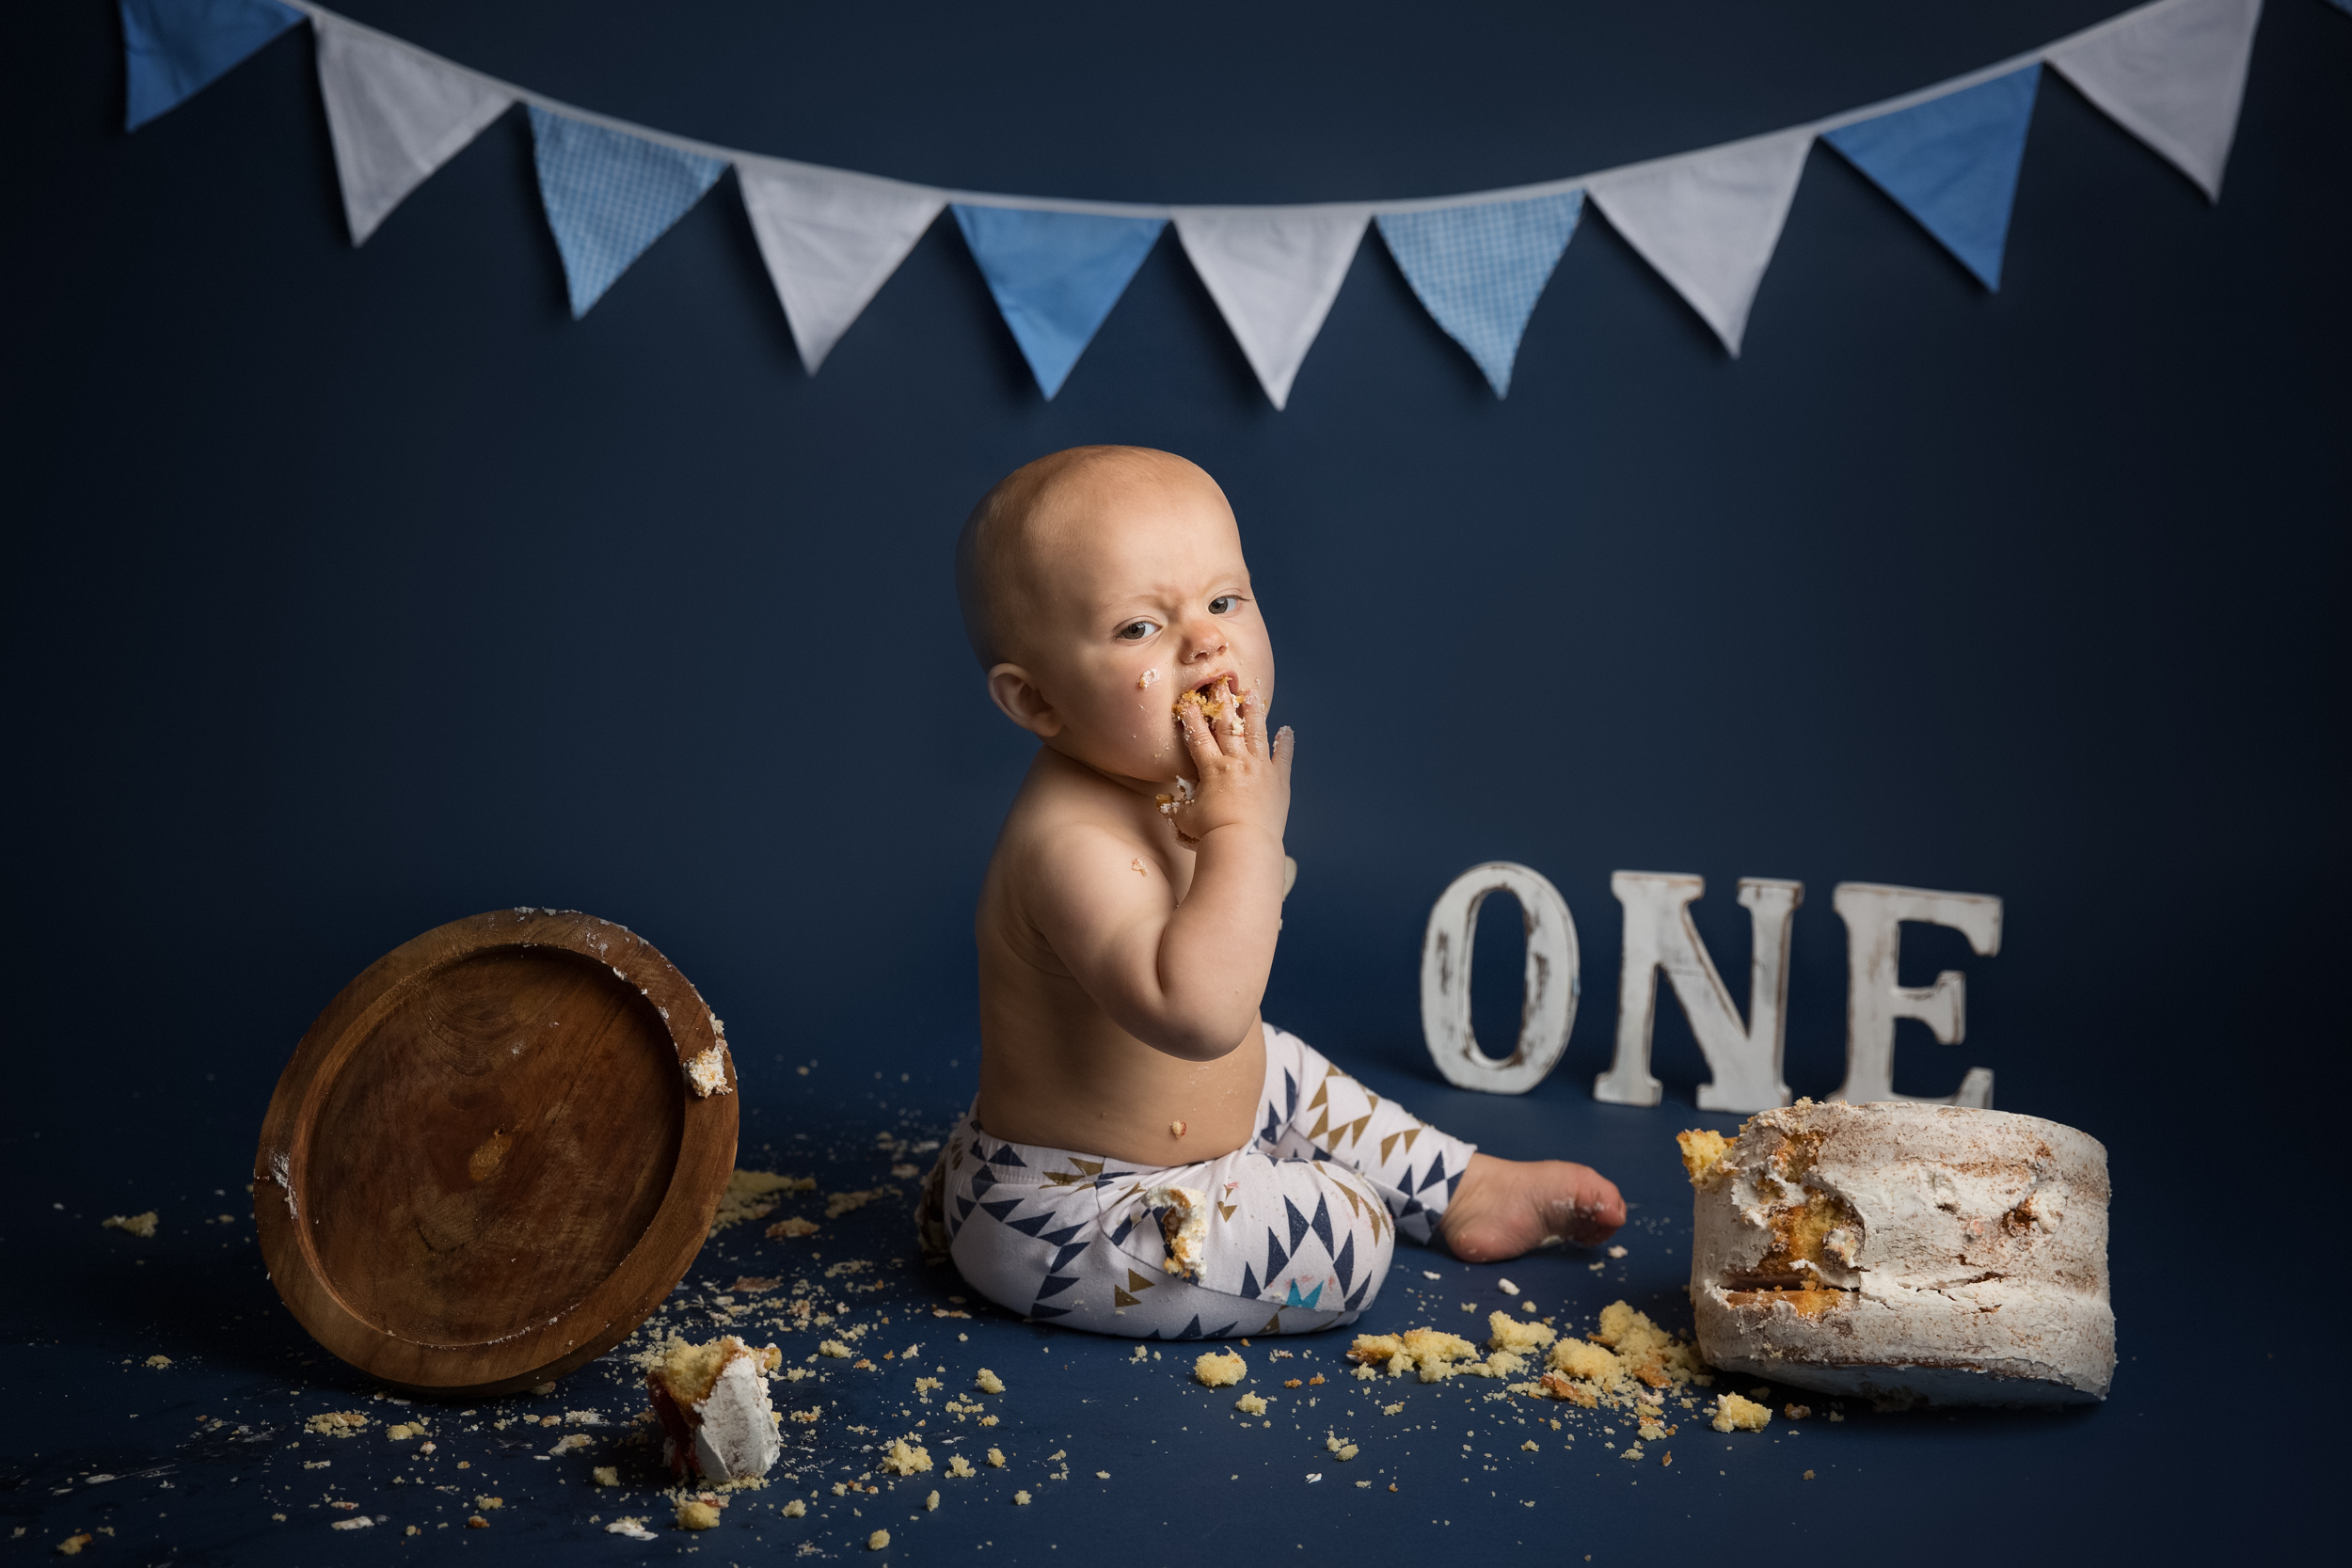 A navy blue and white themed cake smash photo shoot in Cheshire